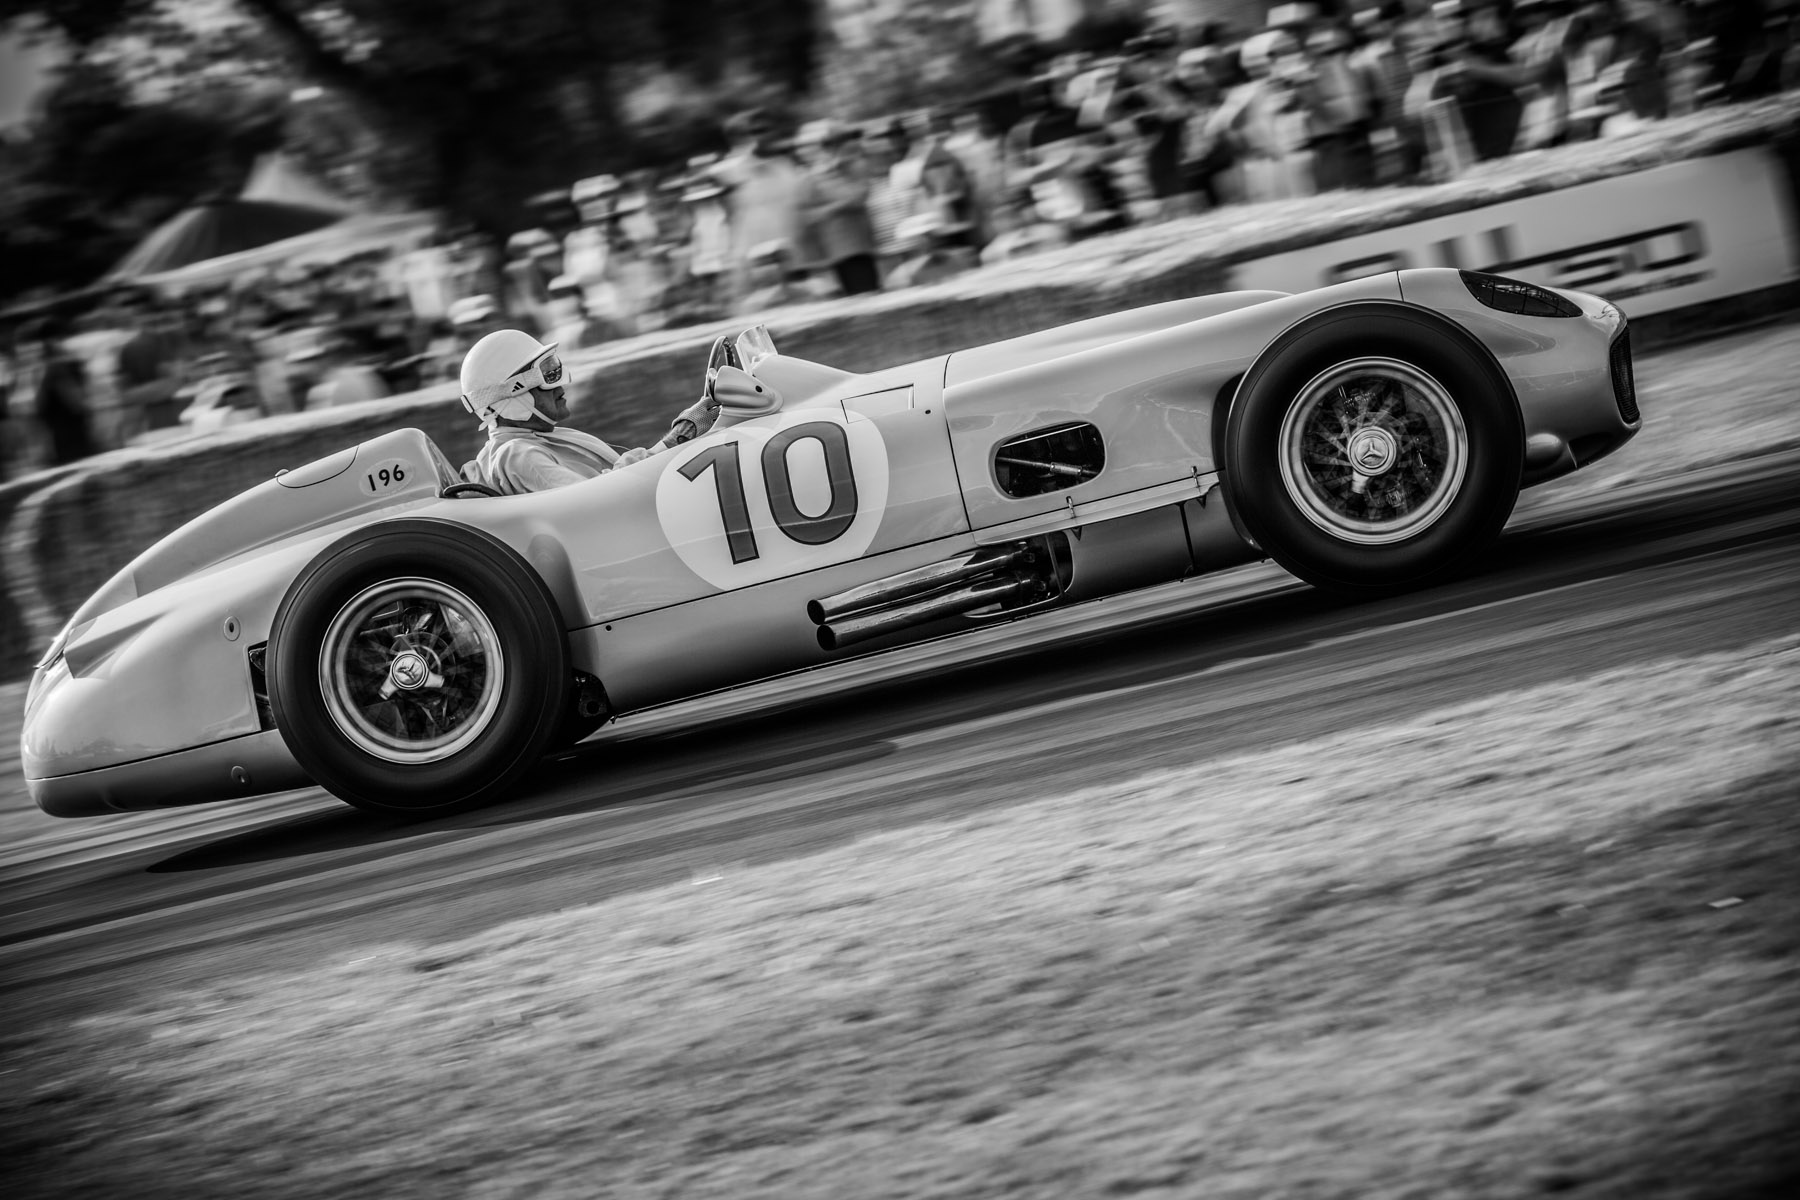 Motor racing event photography UK